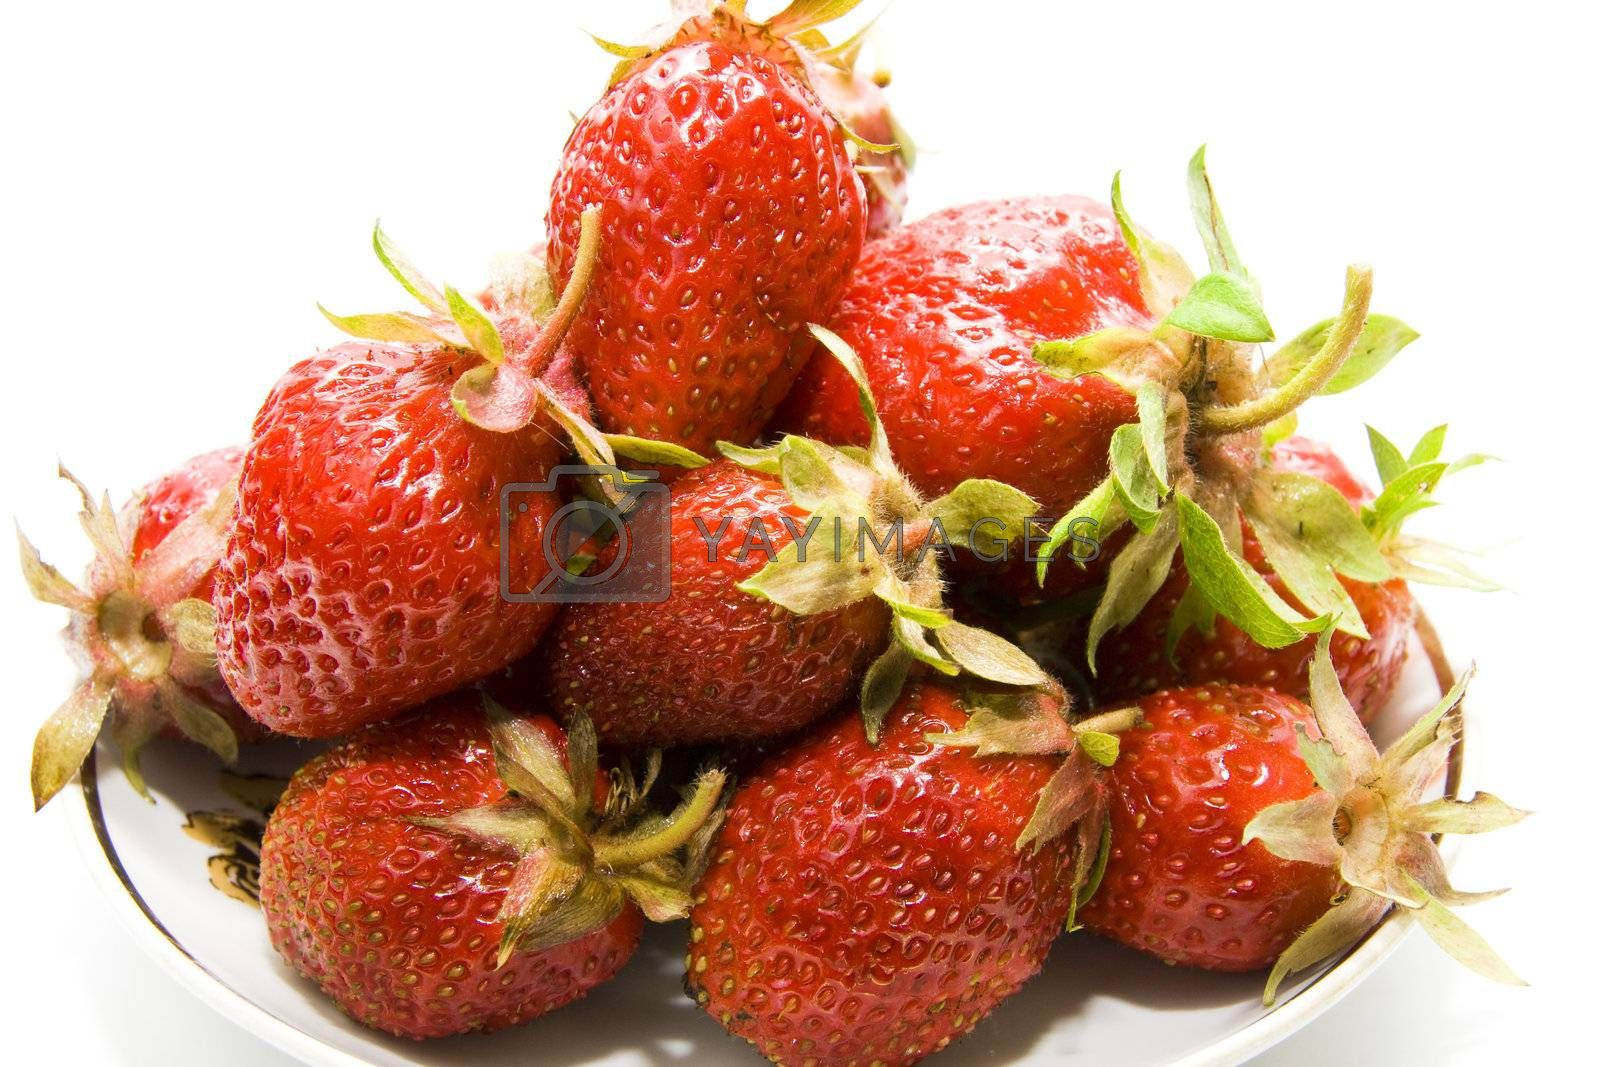 Close up of a strawberry isolated on white background